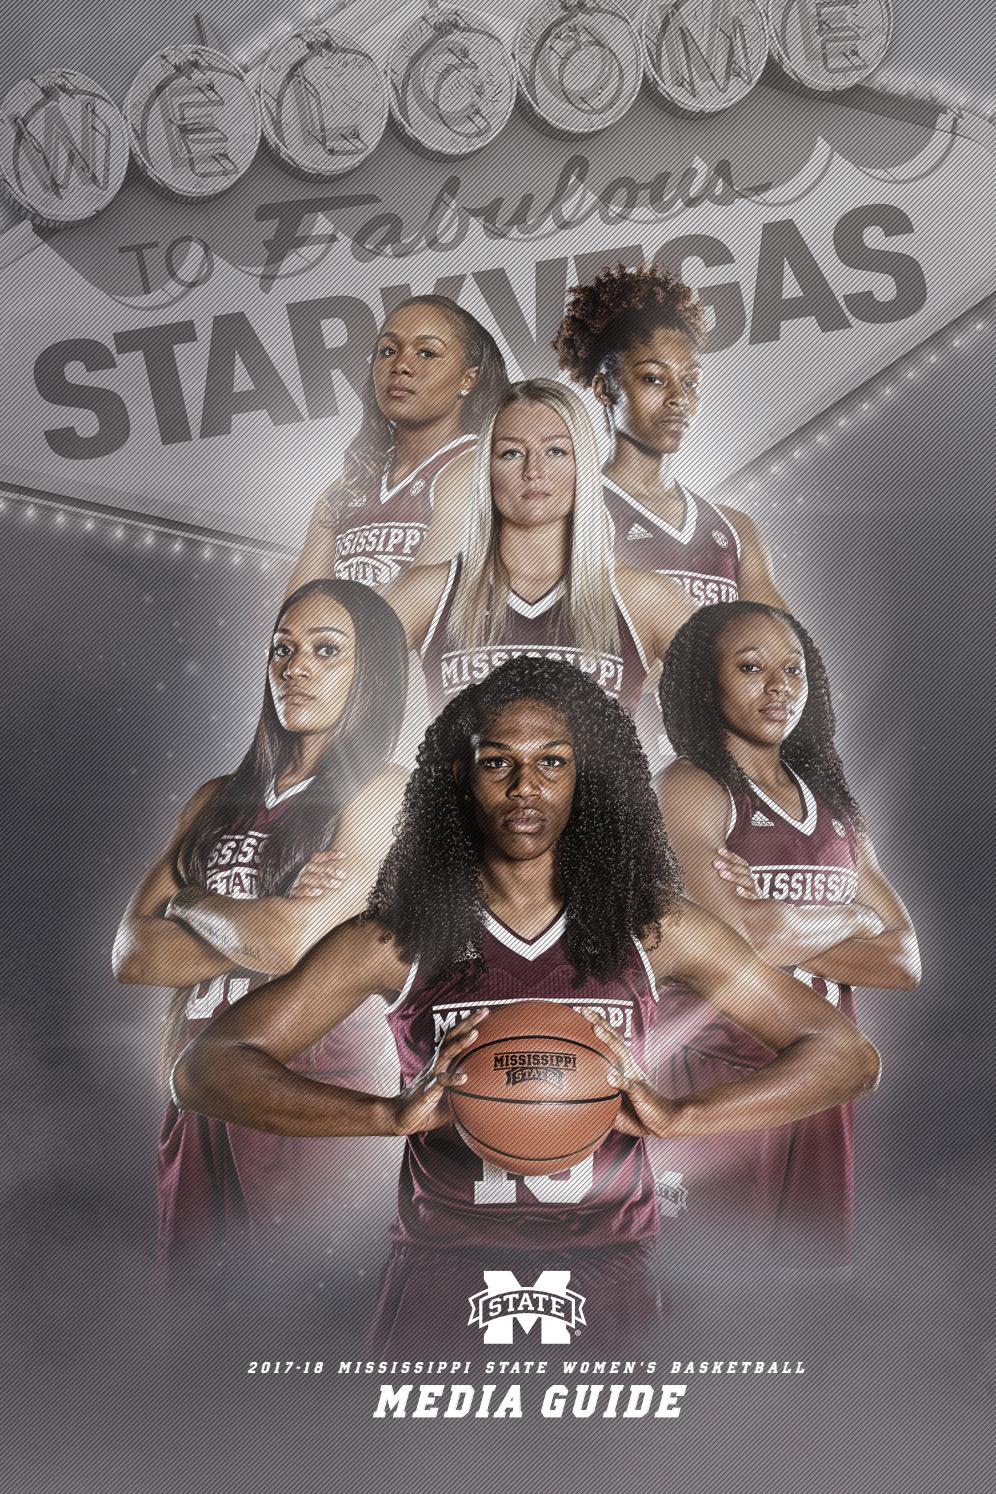 Georgia Southern University Store >> 2017-18 Mississippi State Women's Basketball Media Guide ...